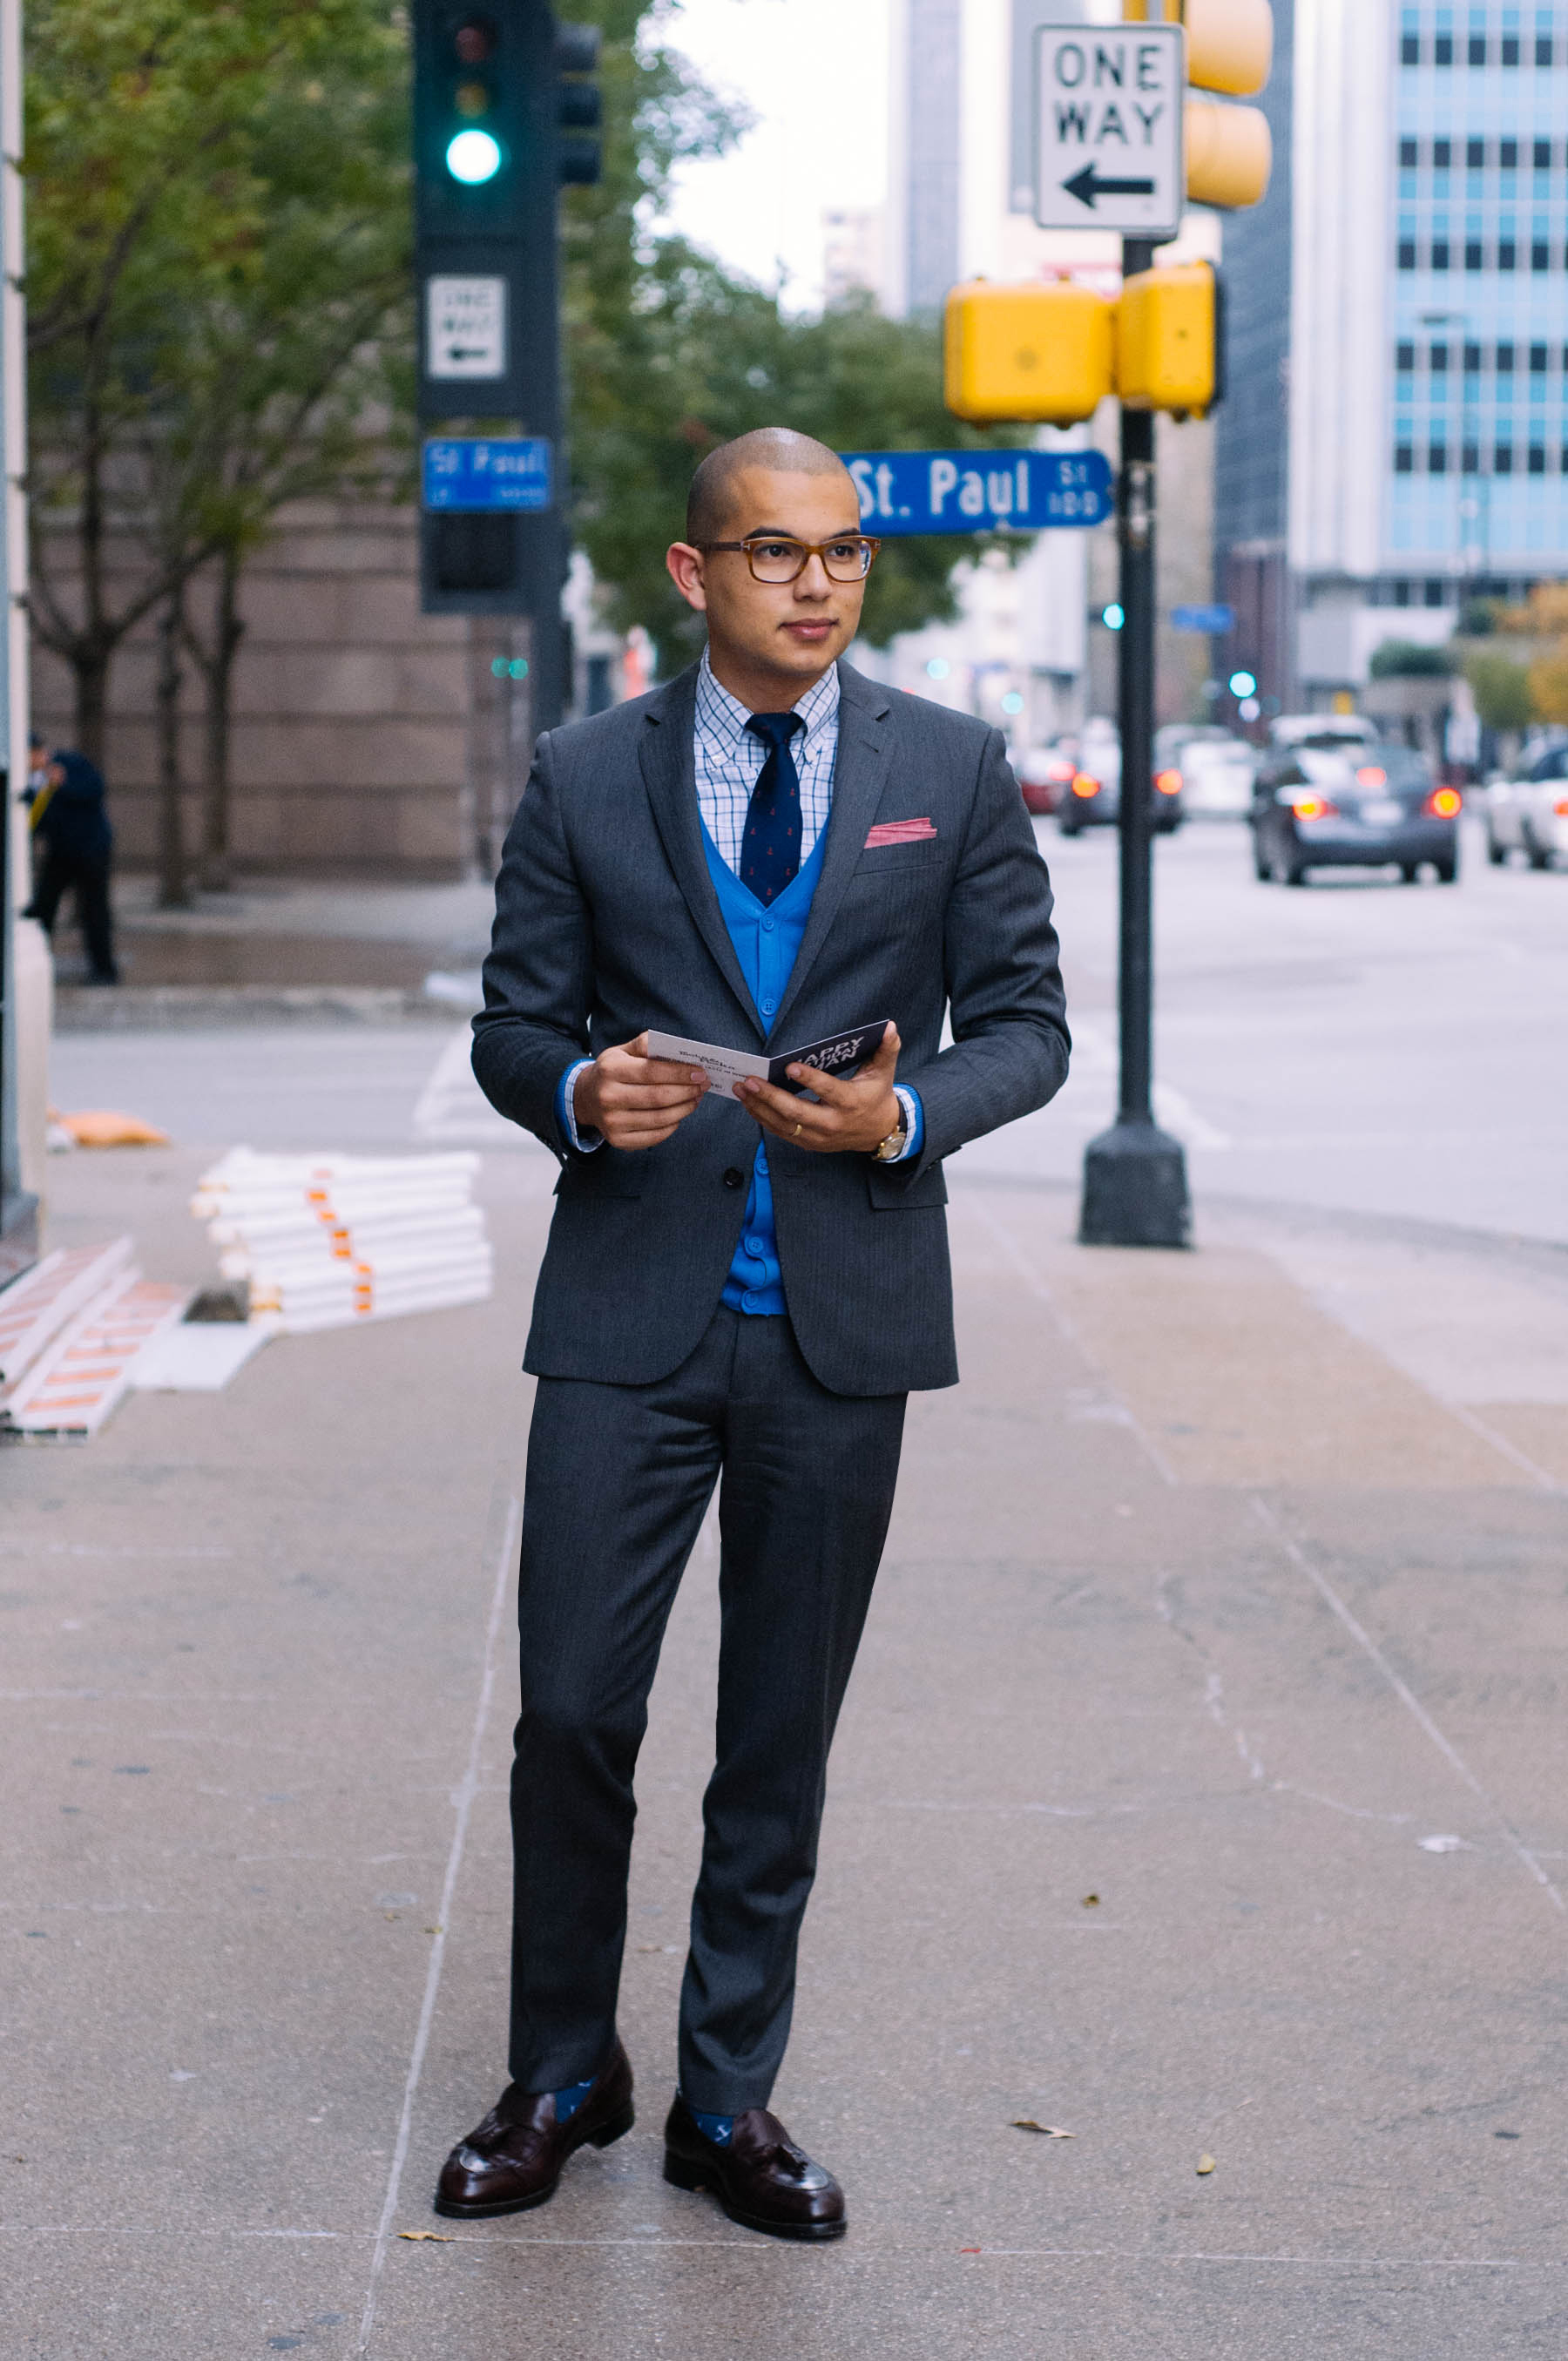 Suit: J.Crew | Shirt: Brooks Brothers | Sweater: H&M | Shoes: Alden | Socks: J.Crew | Tie: J.Crew | Pocket Square: The Tie Bar | Watch: Omega | Glasses: Tom Ford